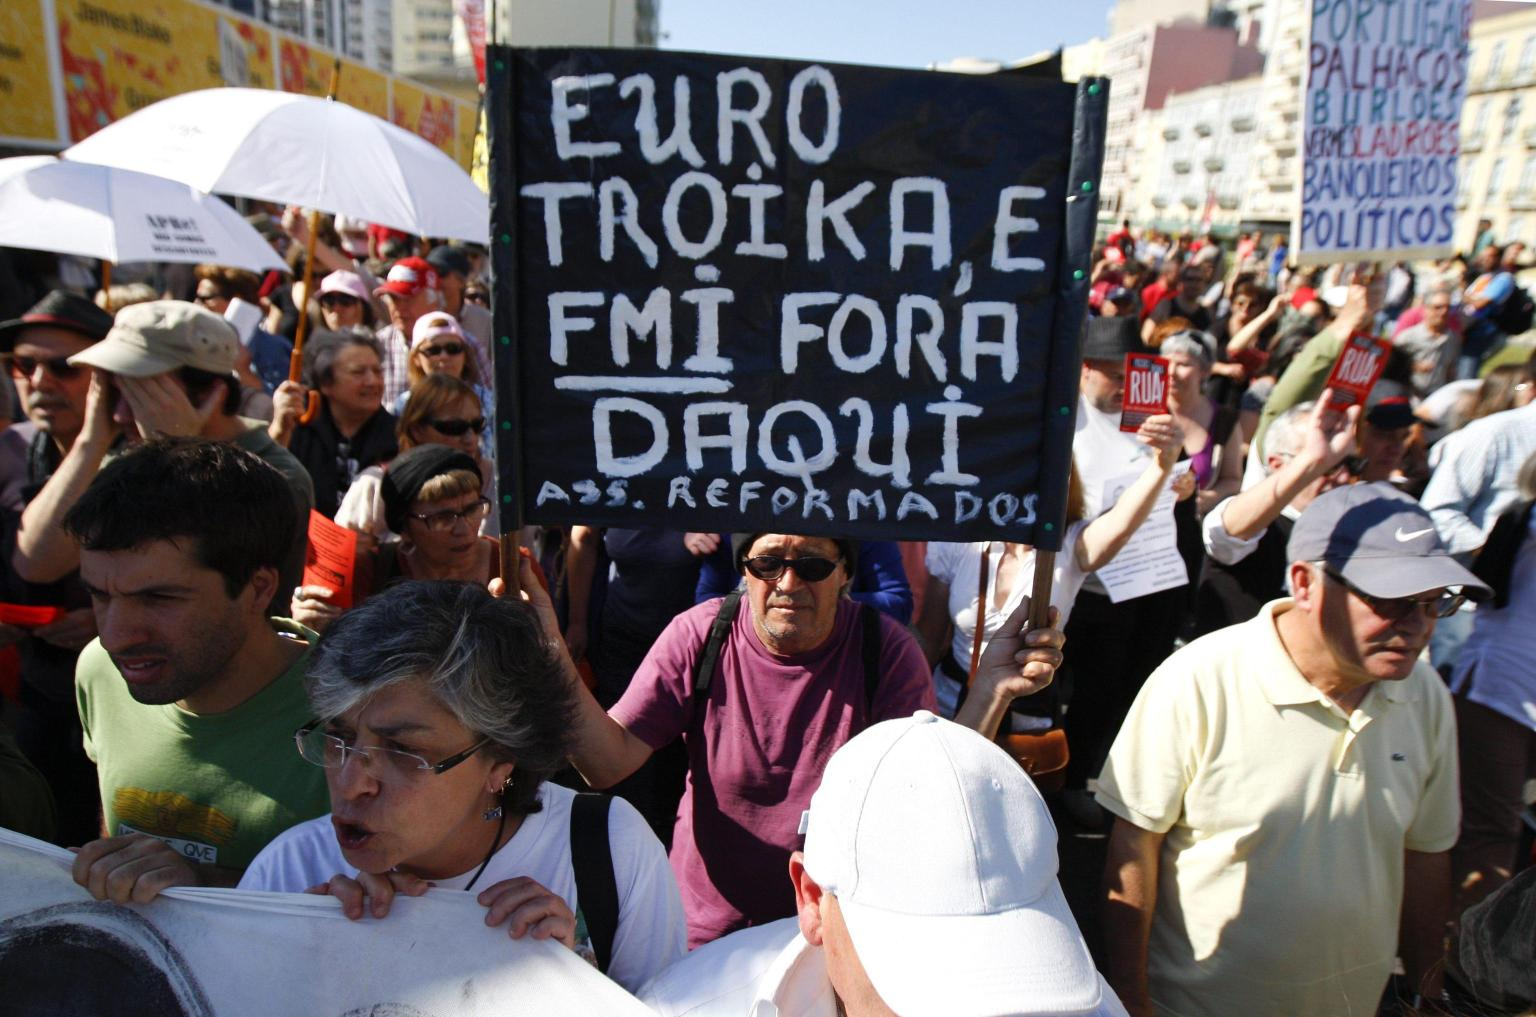 Protest against Troika